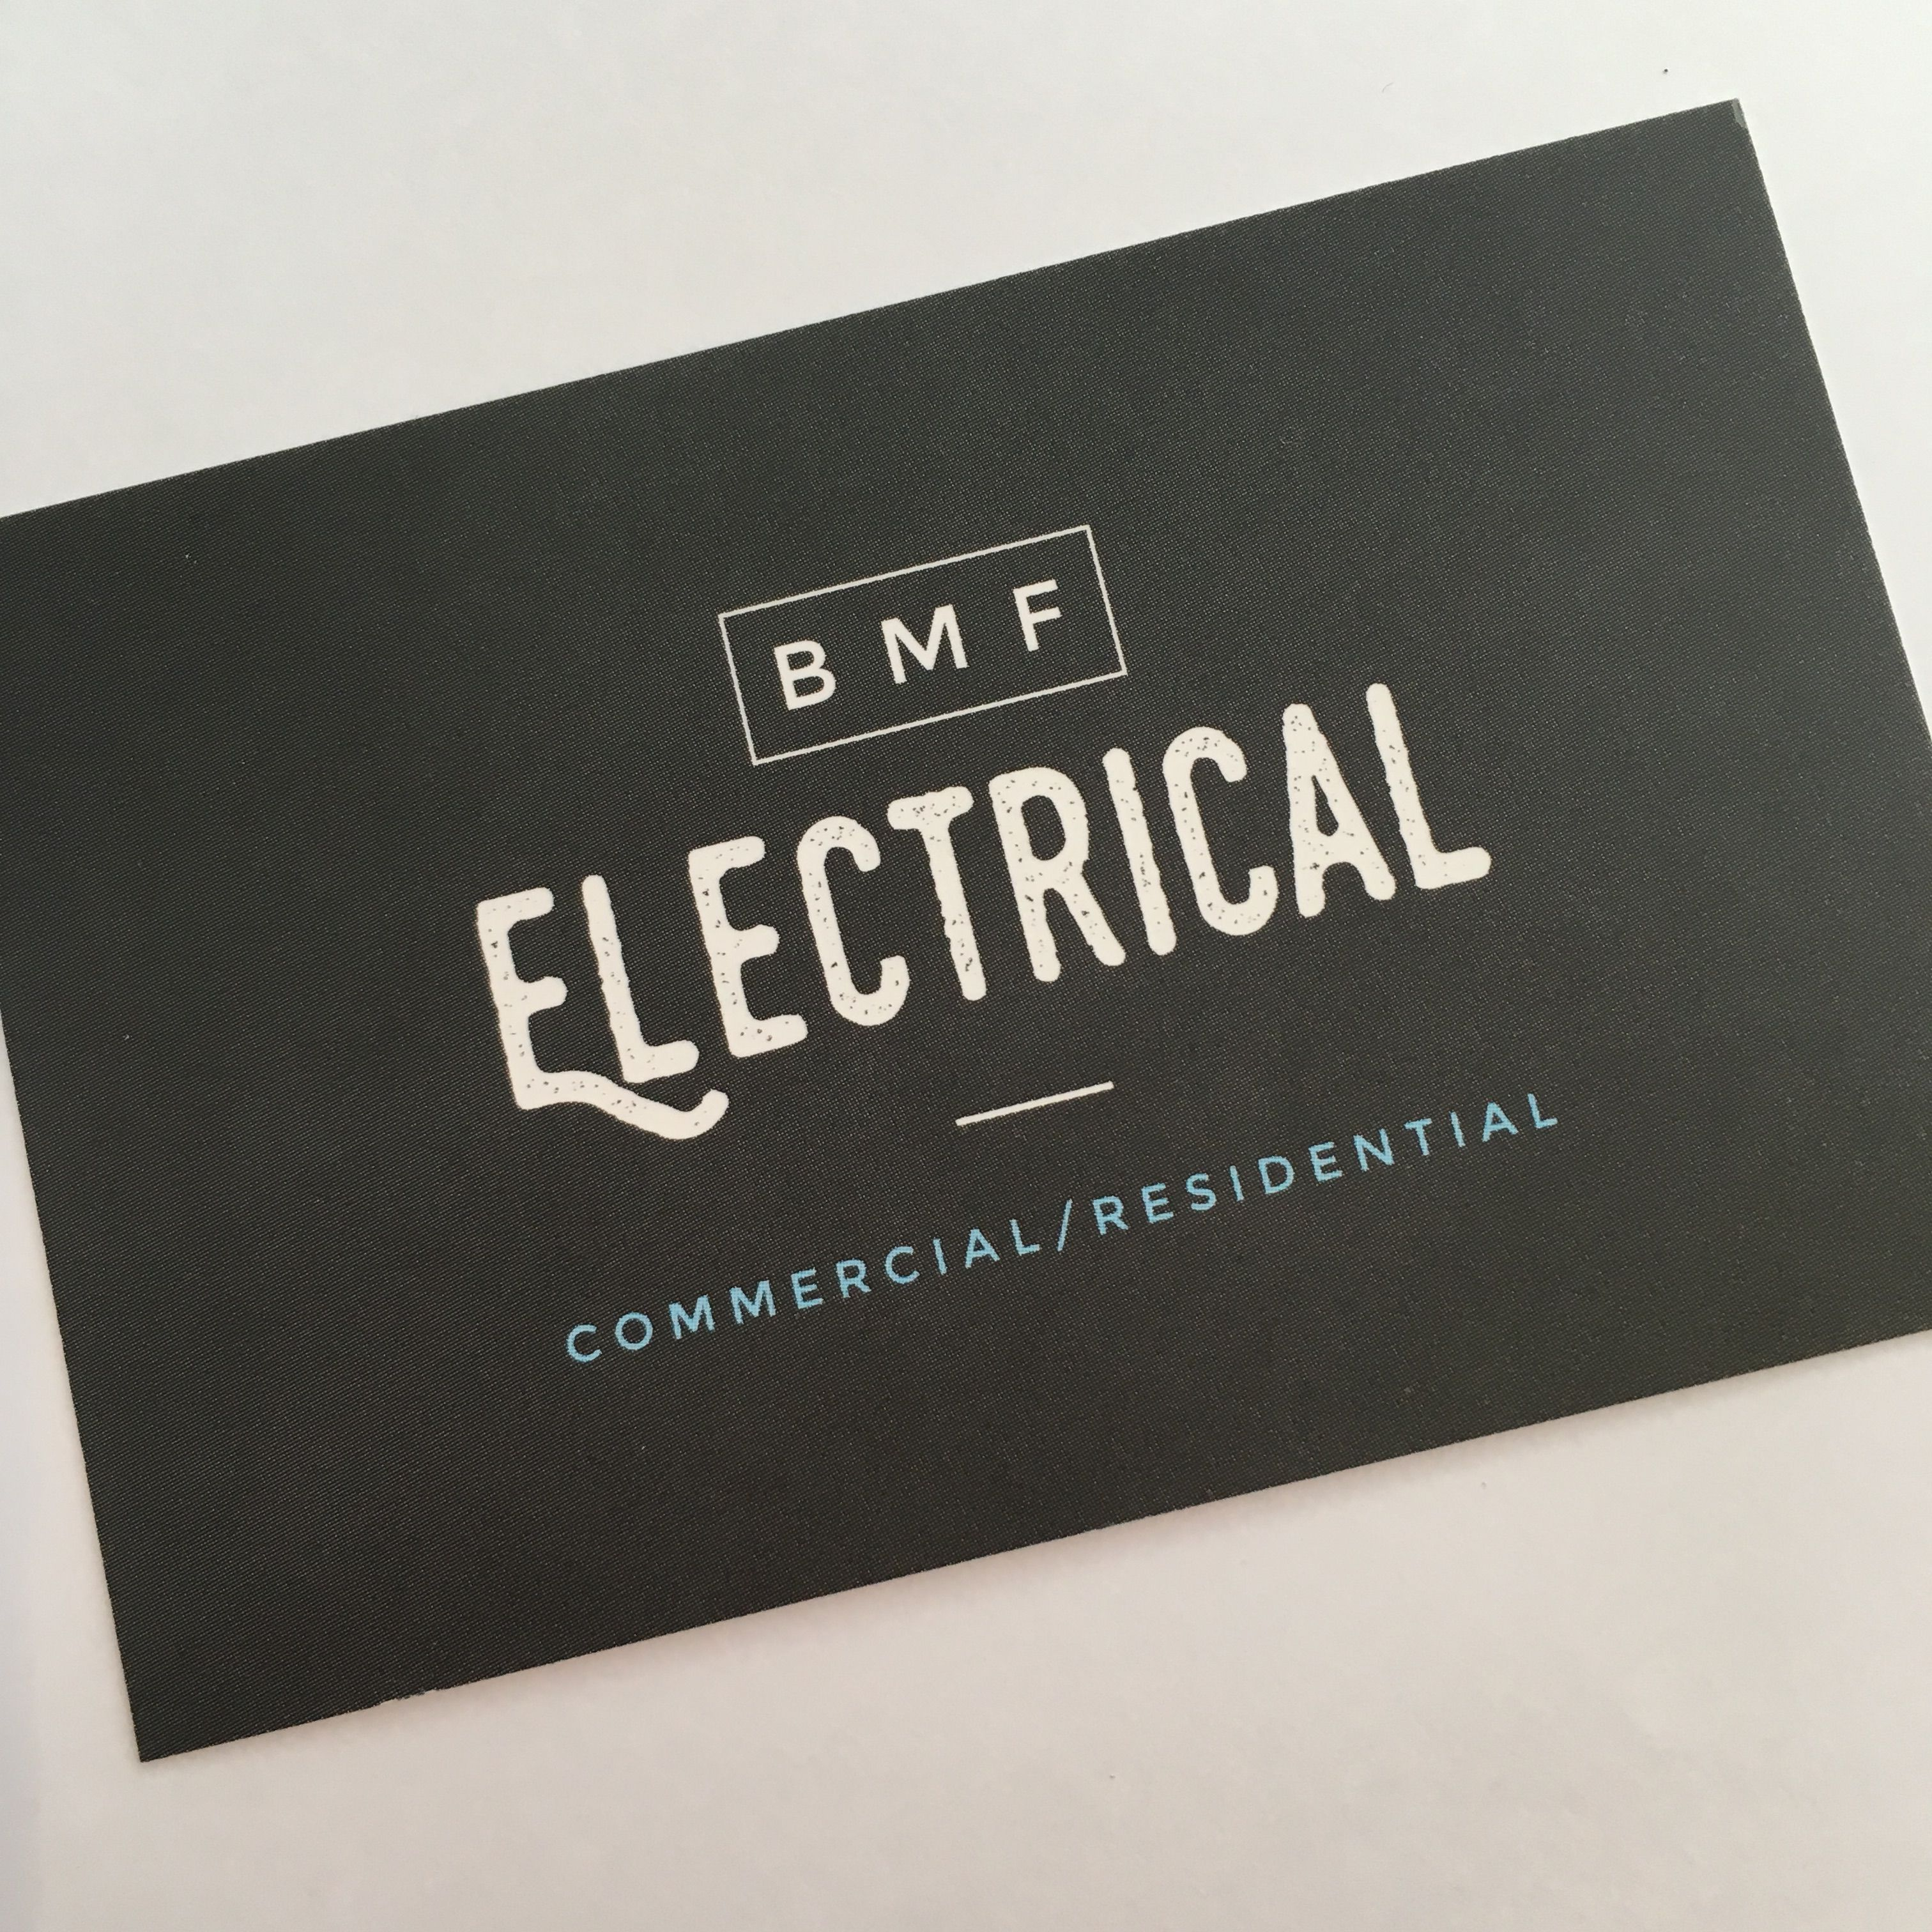 Recent business card and logo design for electrician based in recent business card and logo design for electrician based in stockbillericay essex magicingreecefo Image collections